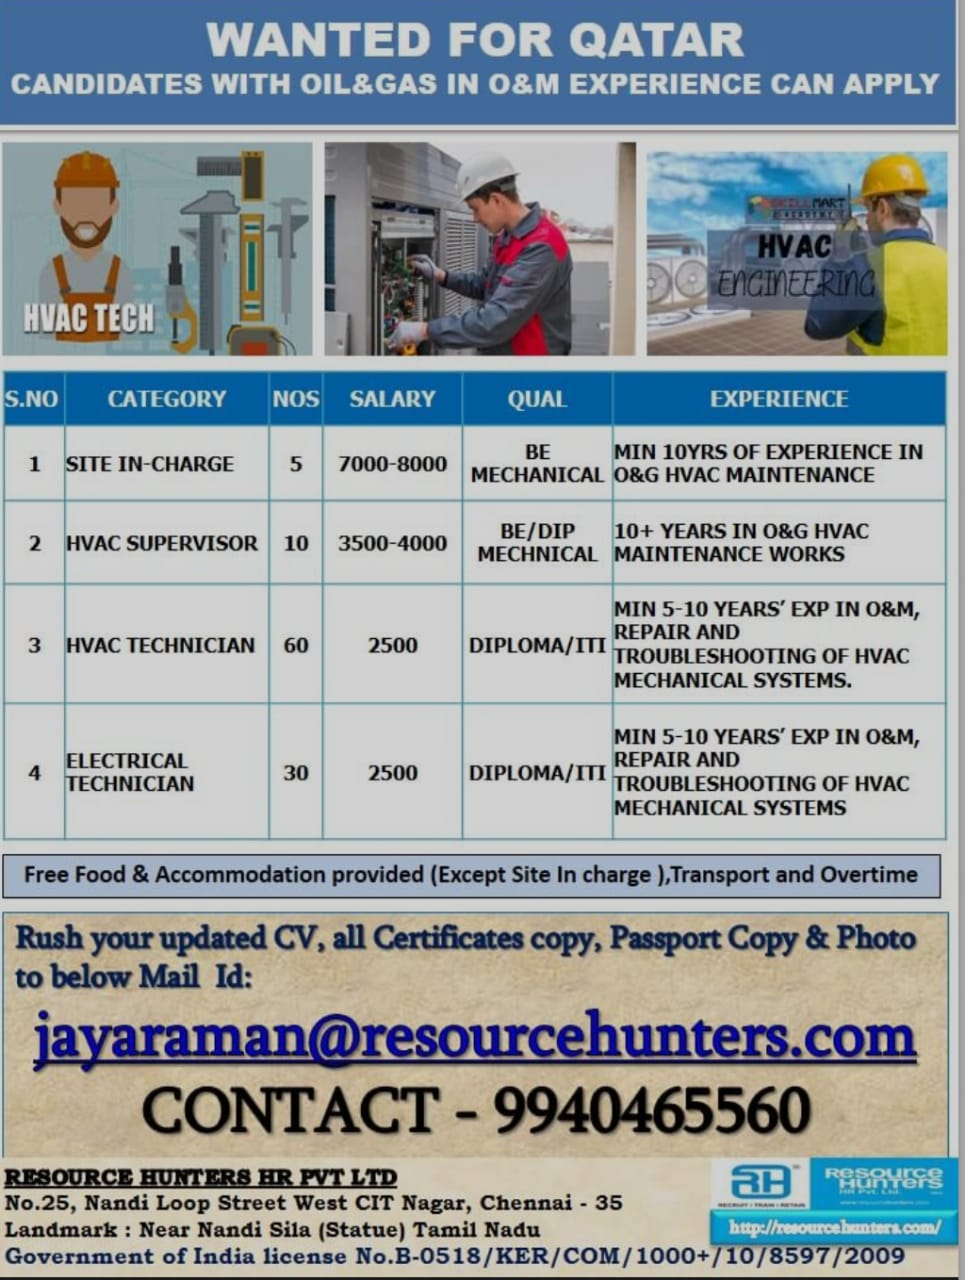 CANDIDATES WITH OIL AND GAS EXPERIENCE CAN APPLY-QATAR